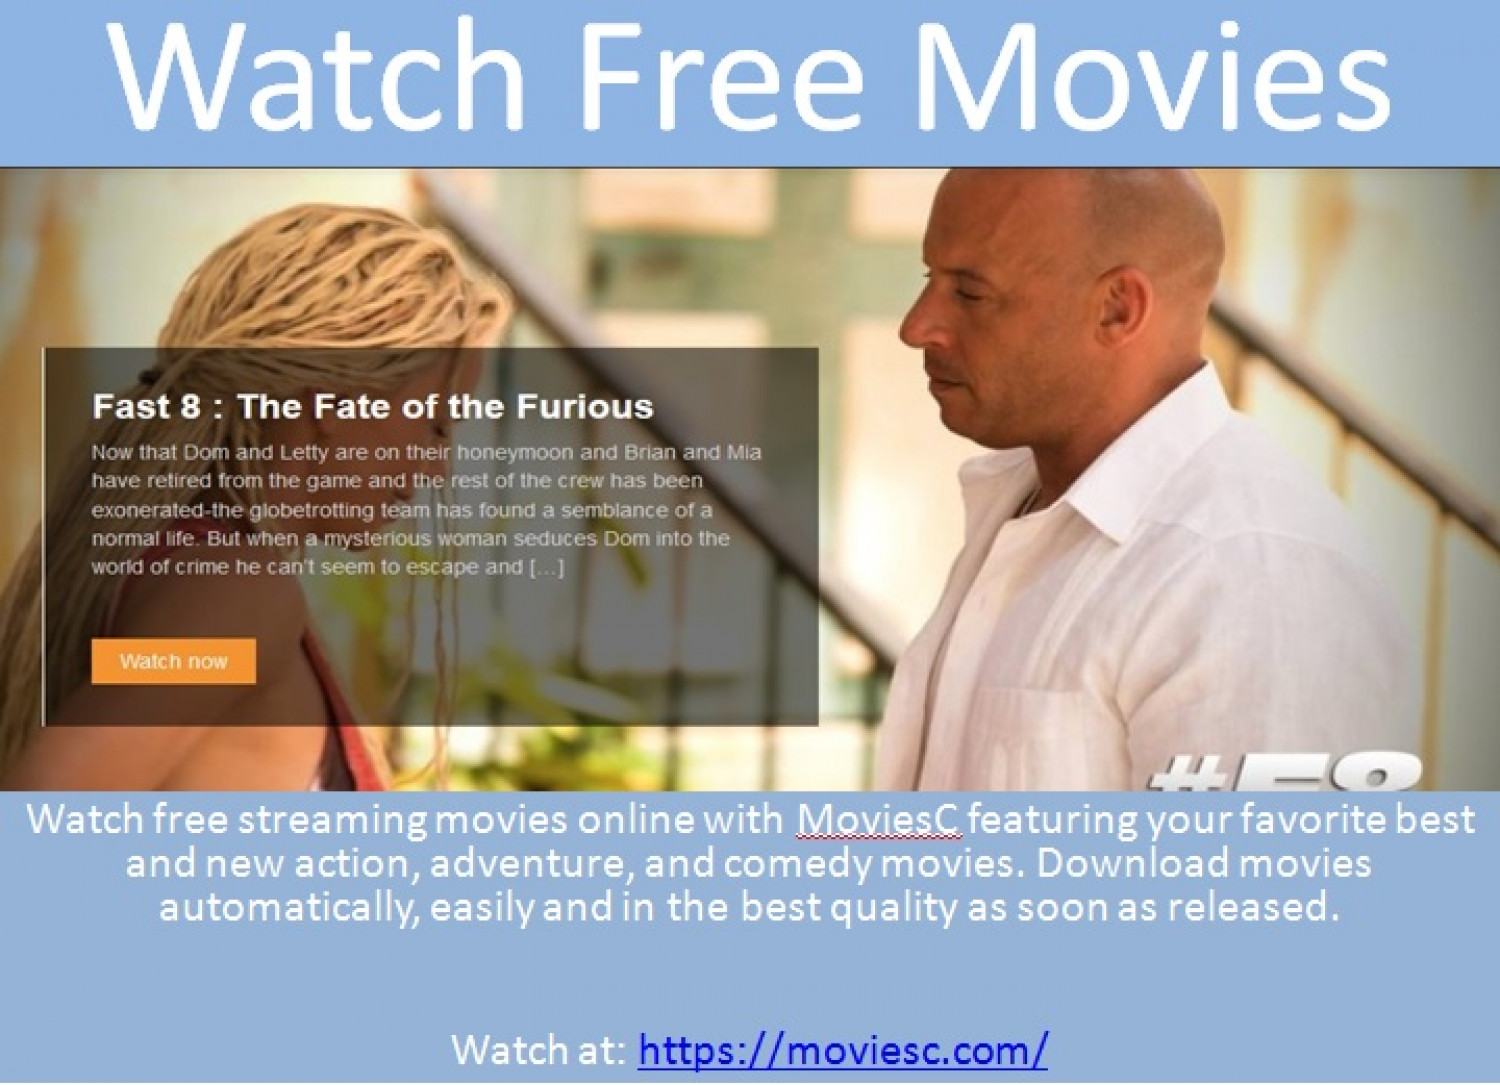 Watch Free Movies Infographic